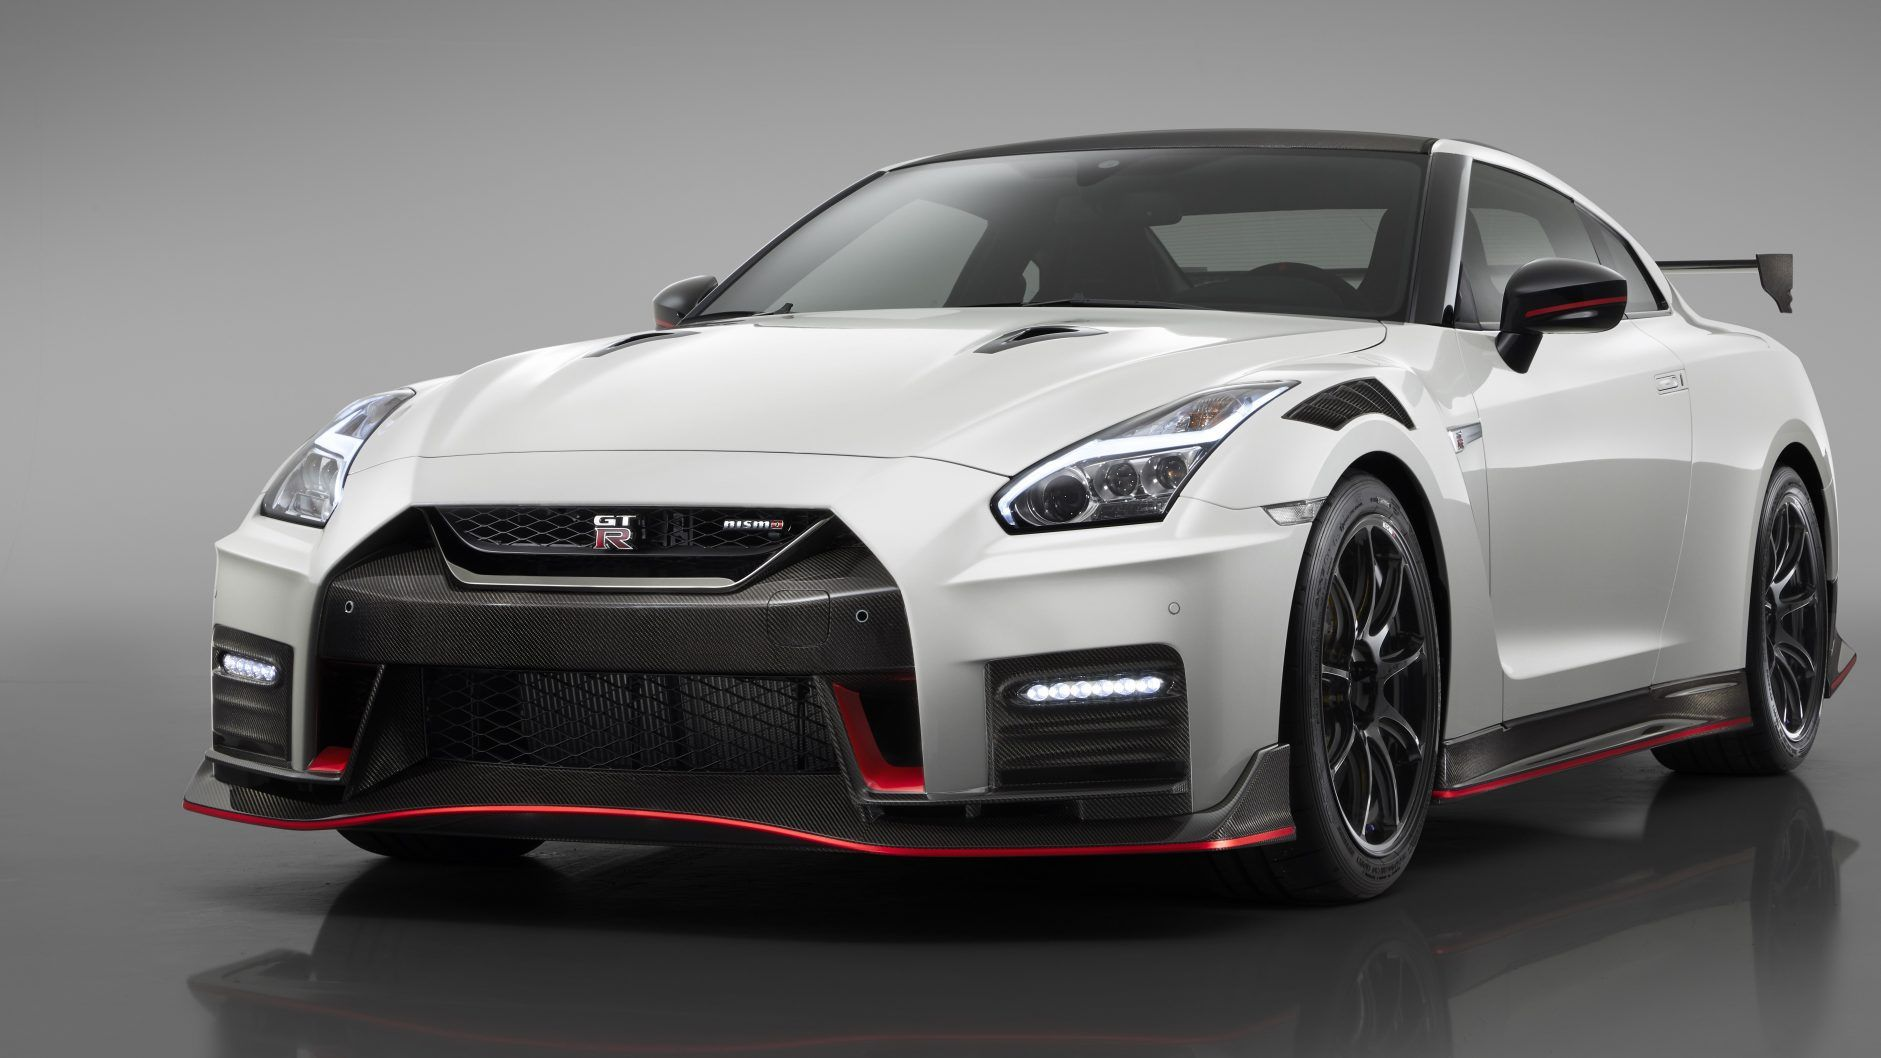 The 2020 Nissan Gt R Nismo Made Its World Launching With Race Car Inspired Upgrades And Tuning Enhancements That Optimize Its Nissan Gtr Nismo Nissan Gt R Gtr